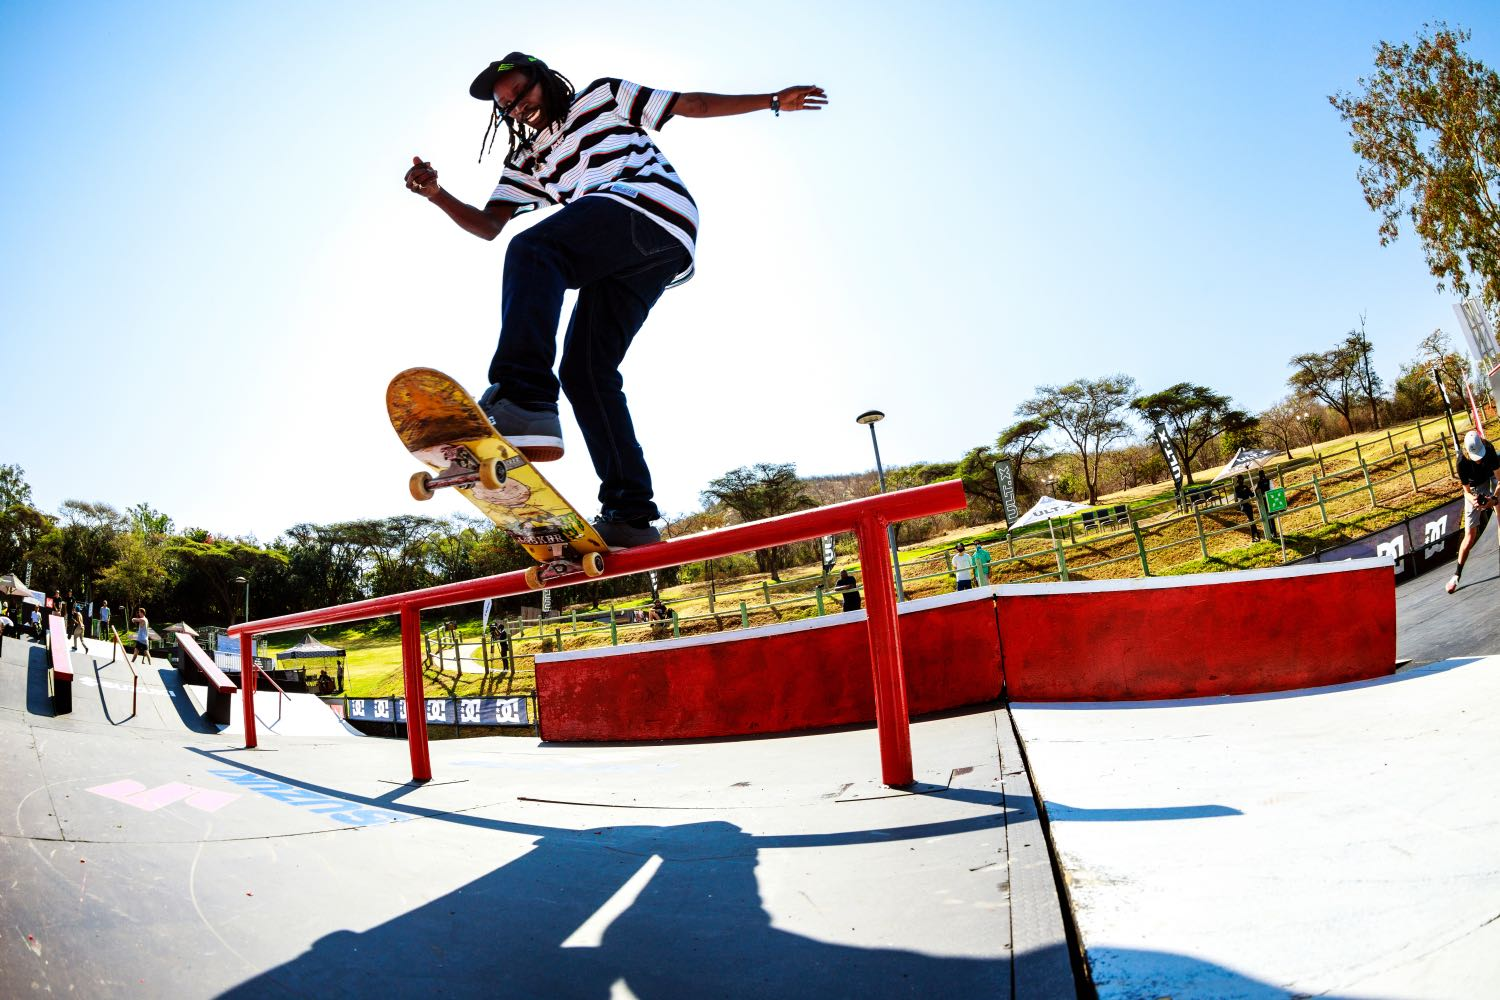 Khule Ngubane competing in the Skate contest at ULT.X 2021